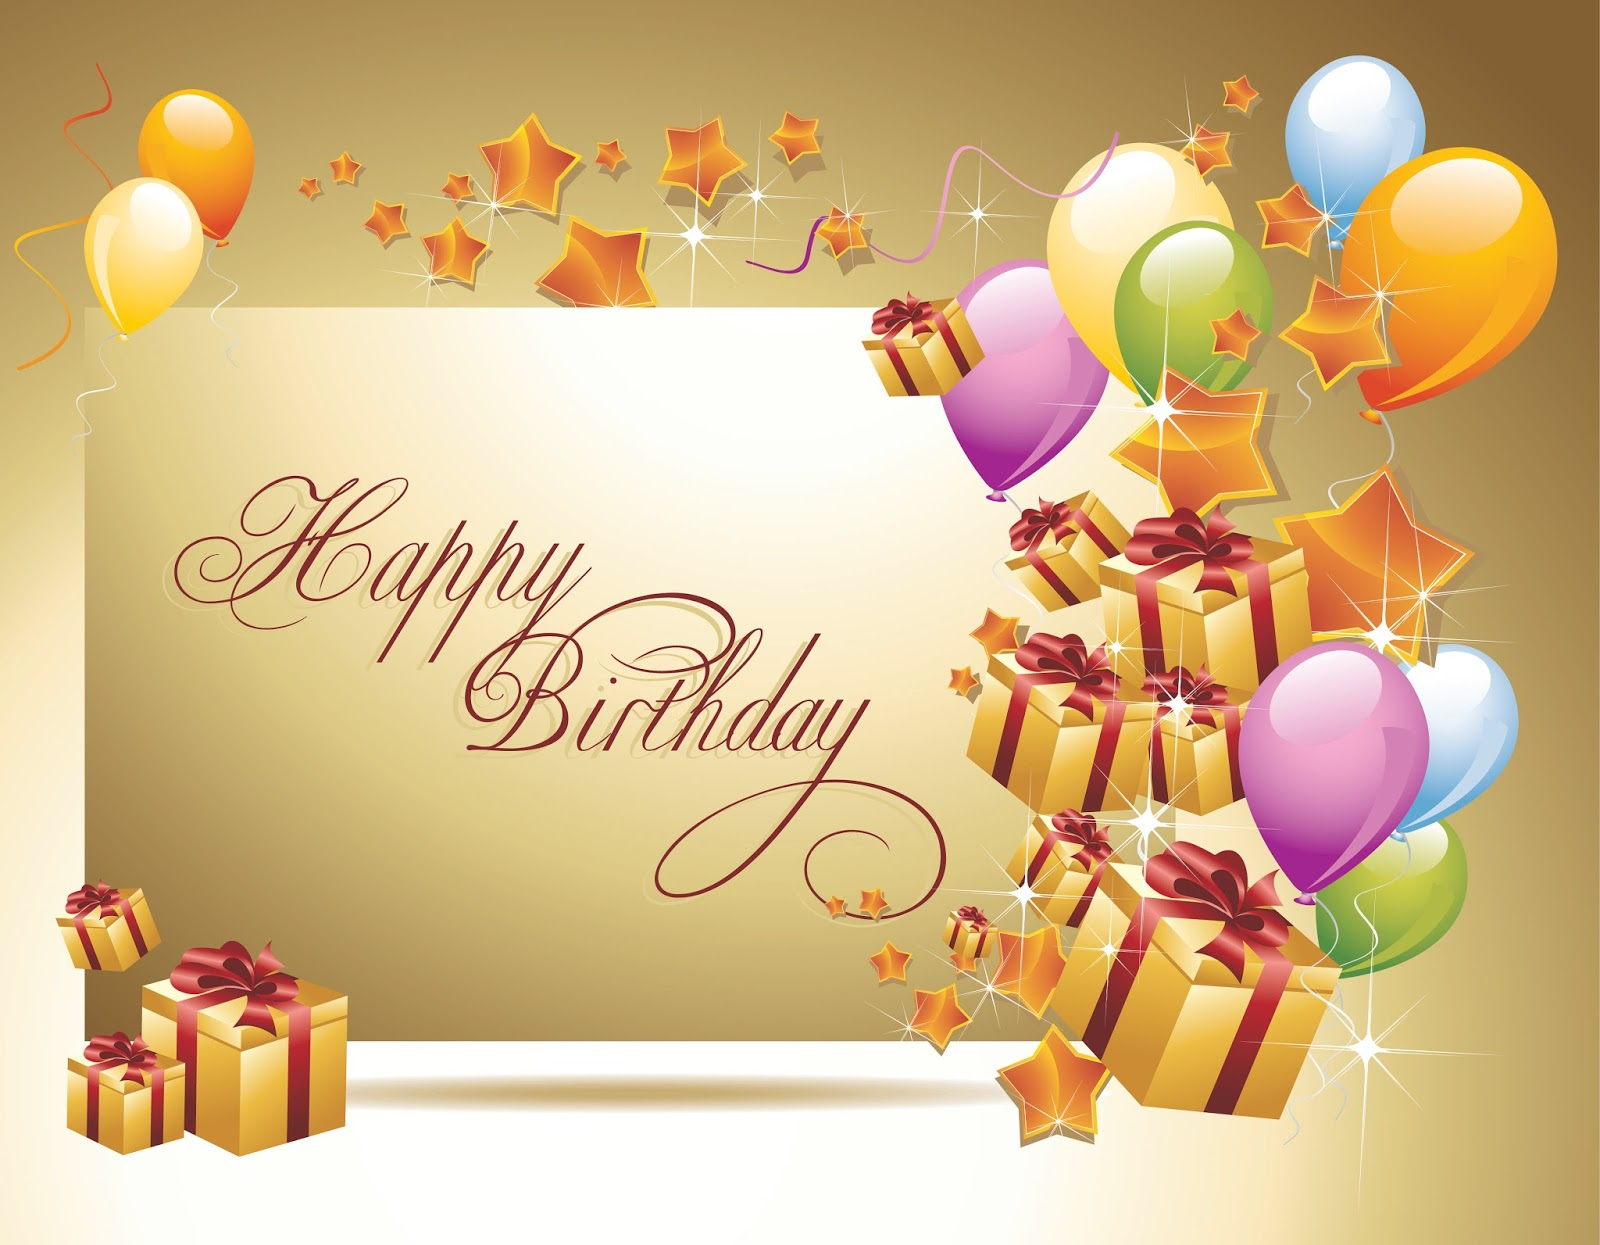 50 Birthday Wishes And Messages With Images Quotes Good Happy Birthday Wishes To My